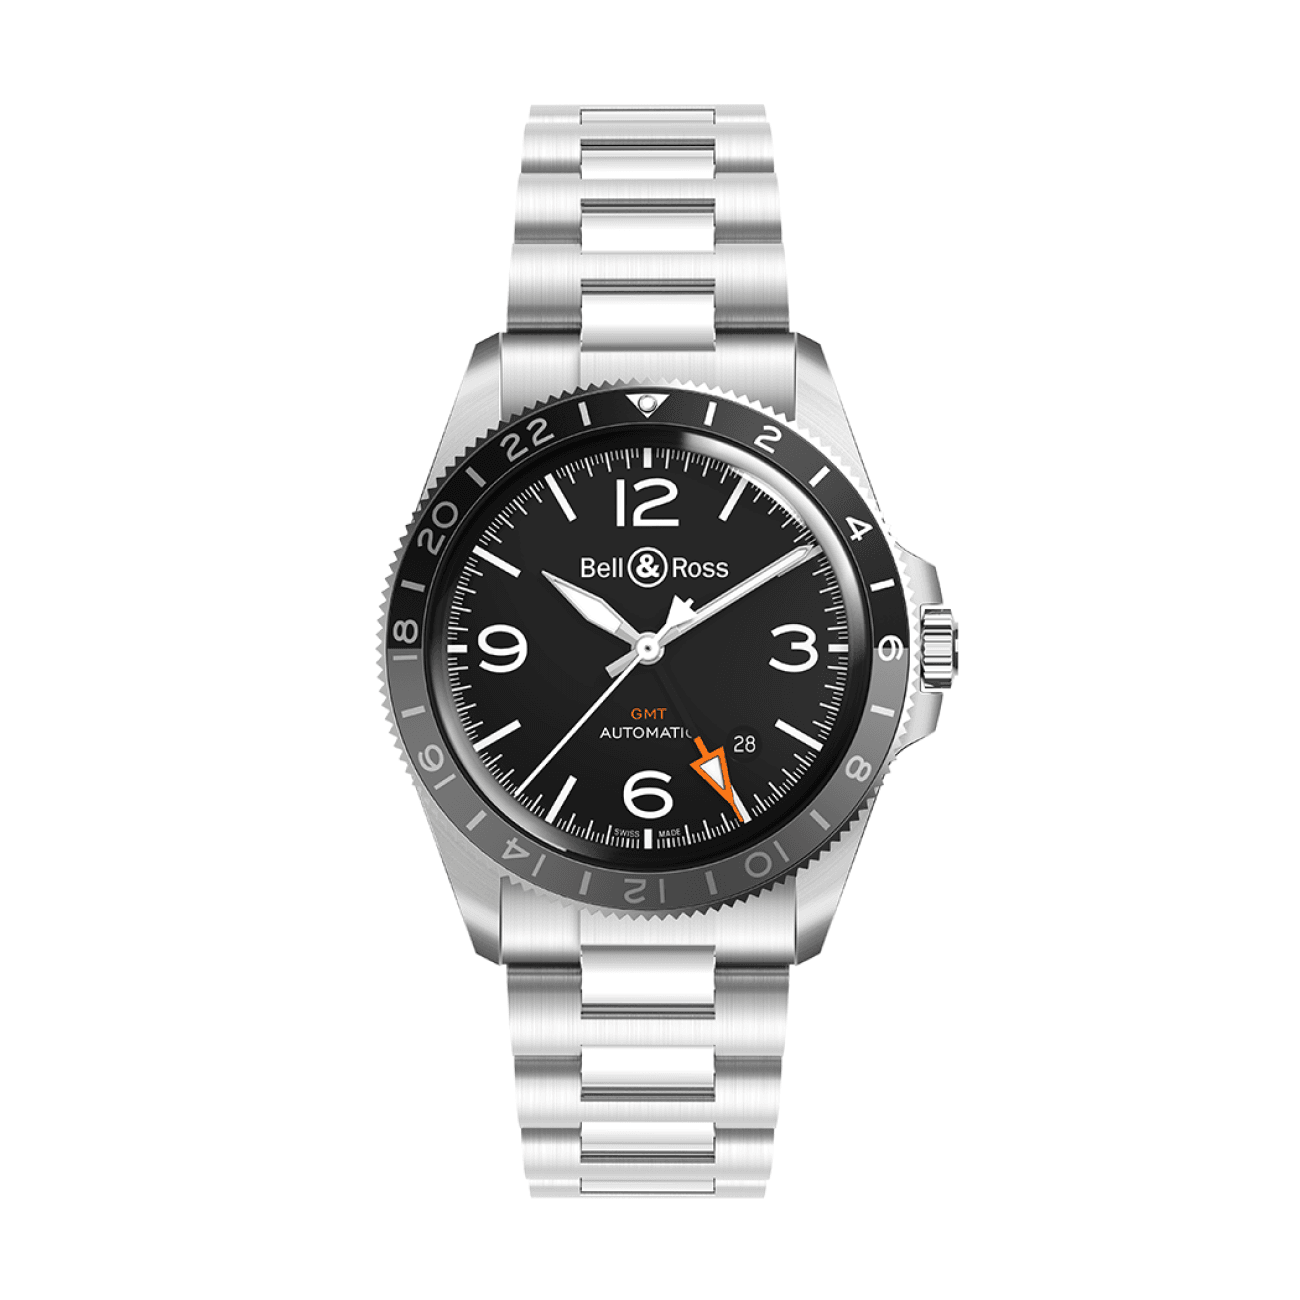 Bell & Ross Watches - BR V2-93 GMT | Manfredi Jewels